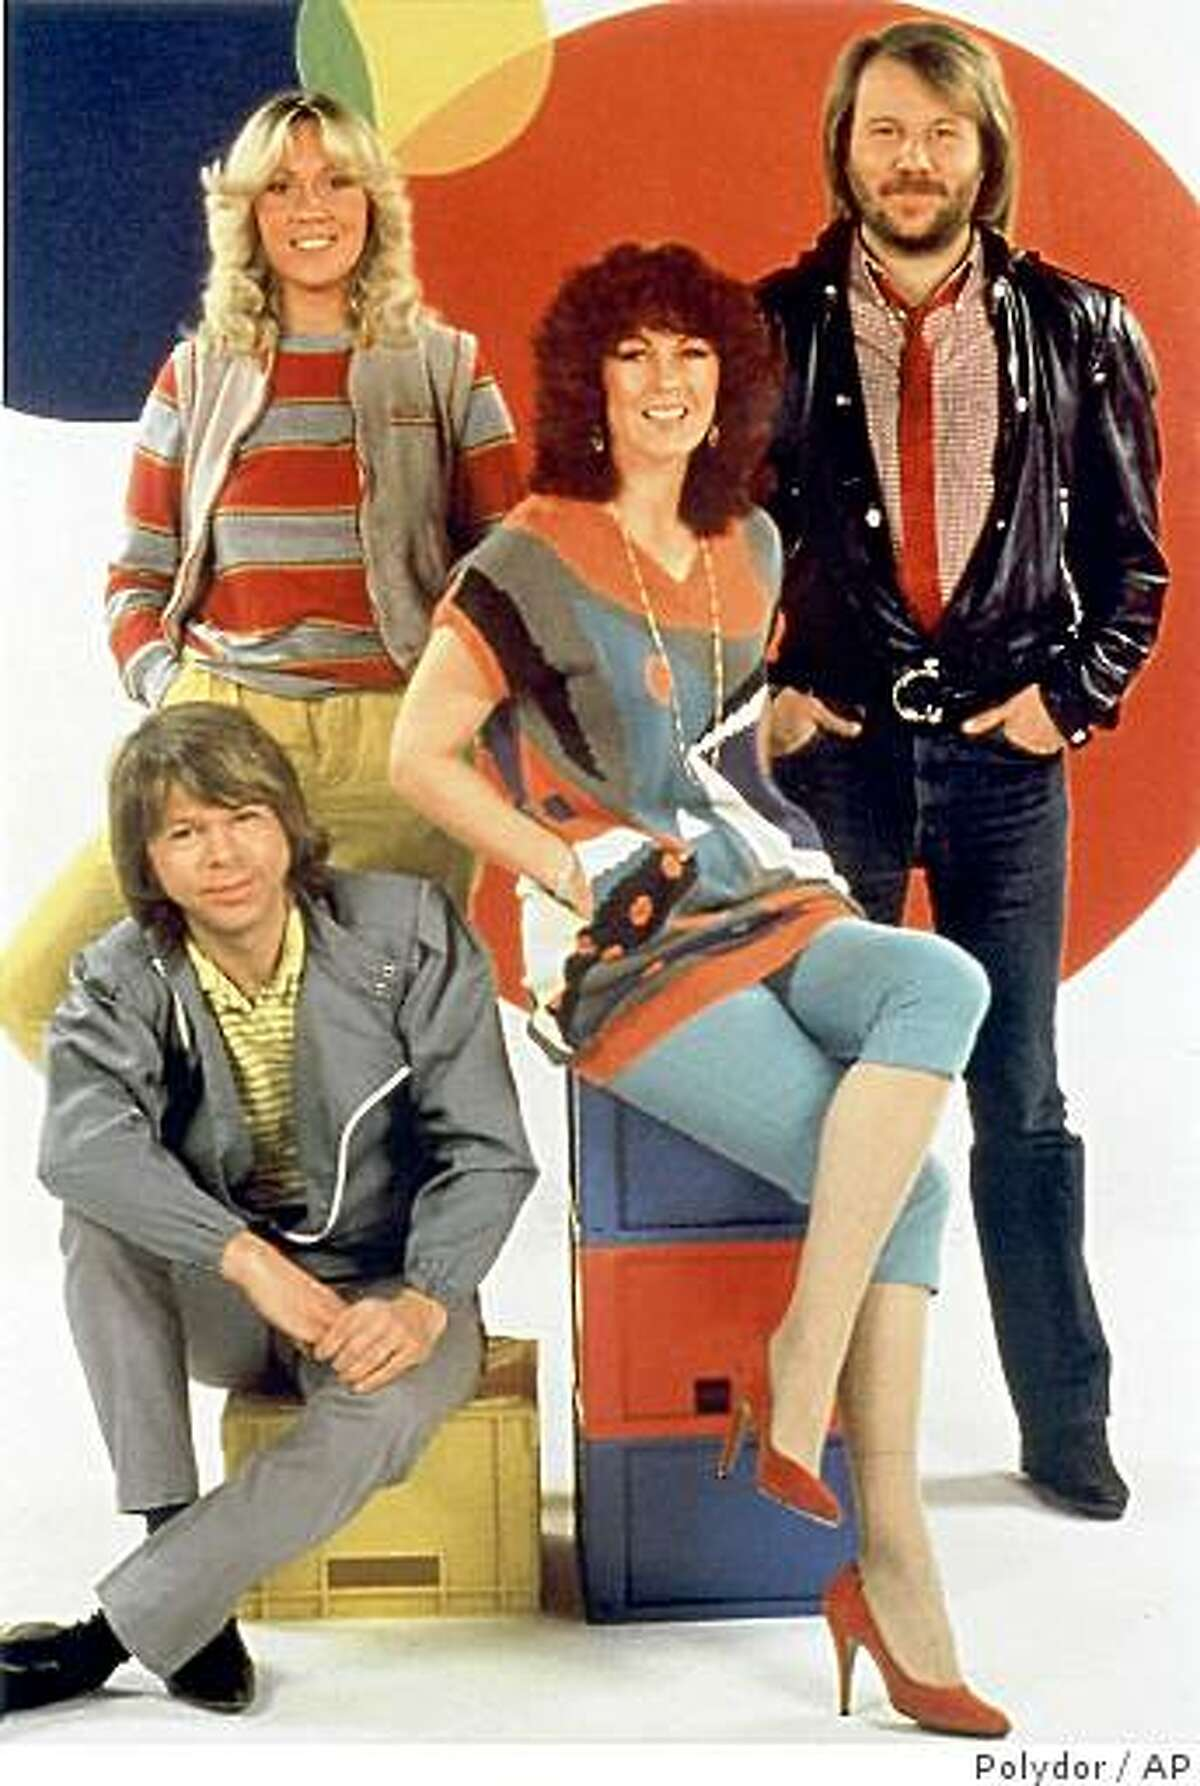 Abba, from left to right, Bjoern Ulvaeus , Agnetha Faltskog, Anni-Frid Lyngstad and Benny Andersson are seen in this undated file photo originally from Polydoor Records.. An ABBA museum dedicated to the music, clothing and history of the Swedish pop group will open in Stockholm in 2008, organizers said Tuesday, Nov. 28, 2006. The group hasn't performed together since 1982.